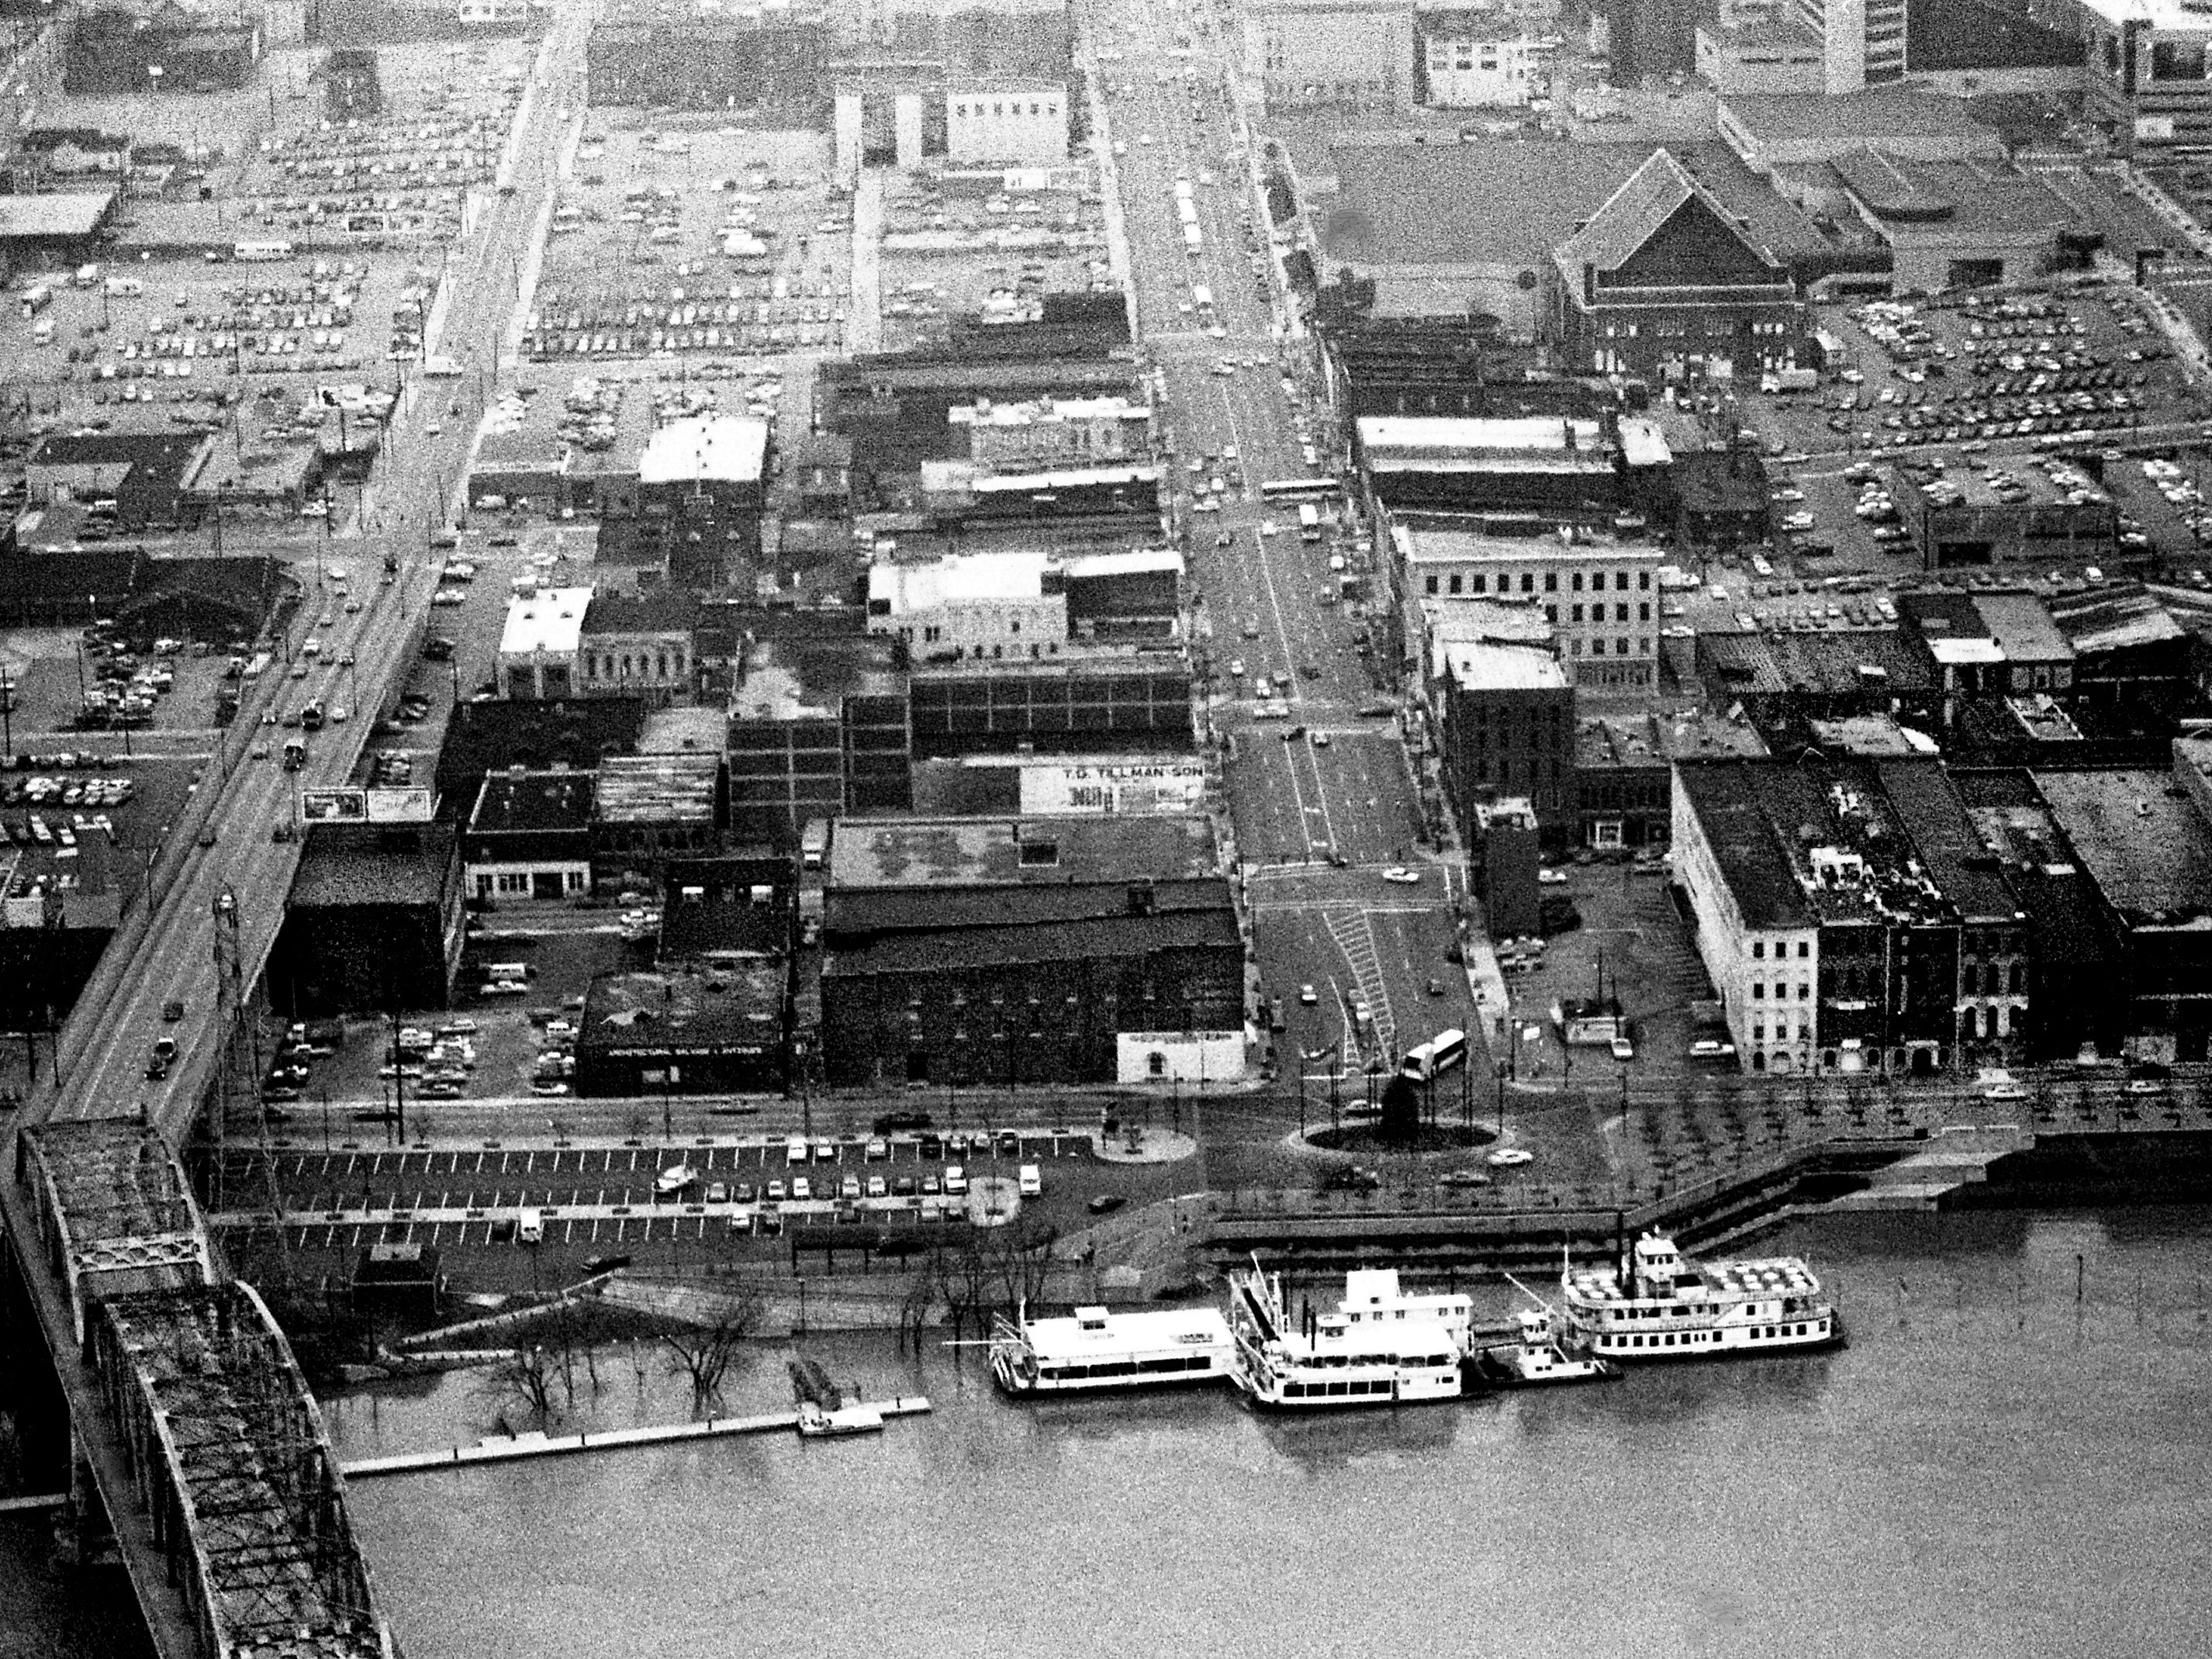 A weekend of almost-constant rainfall, which totaled up to 3.32 inches of rain in the area, has the Cumberland River very high in downtown Nashville on March 6, 1989.